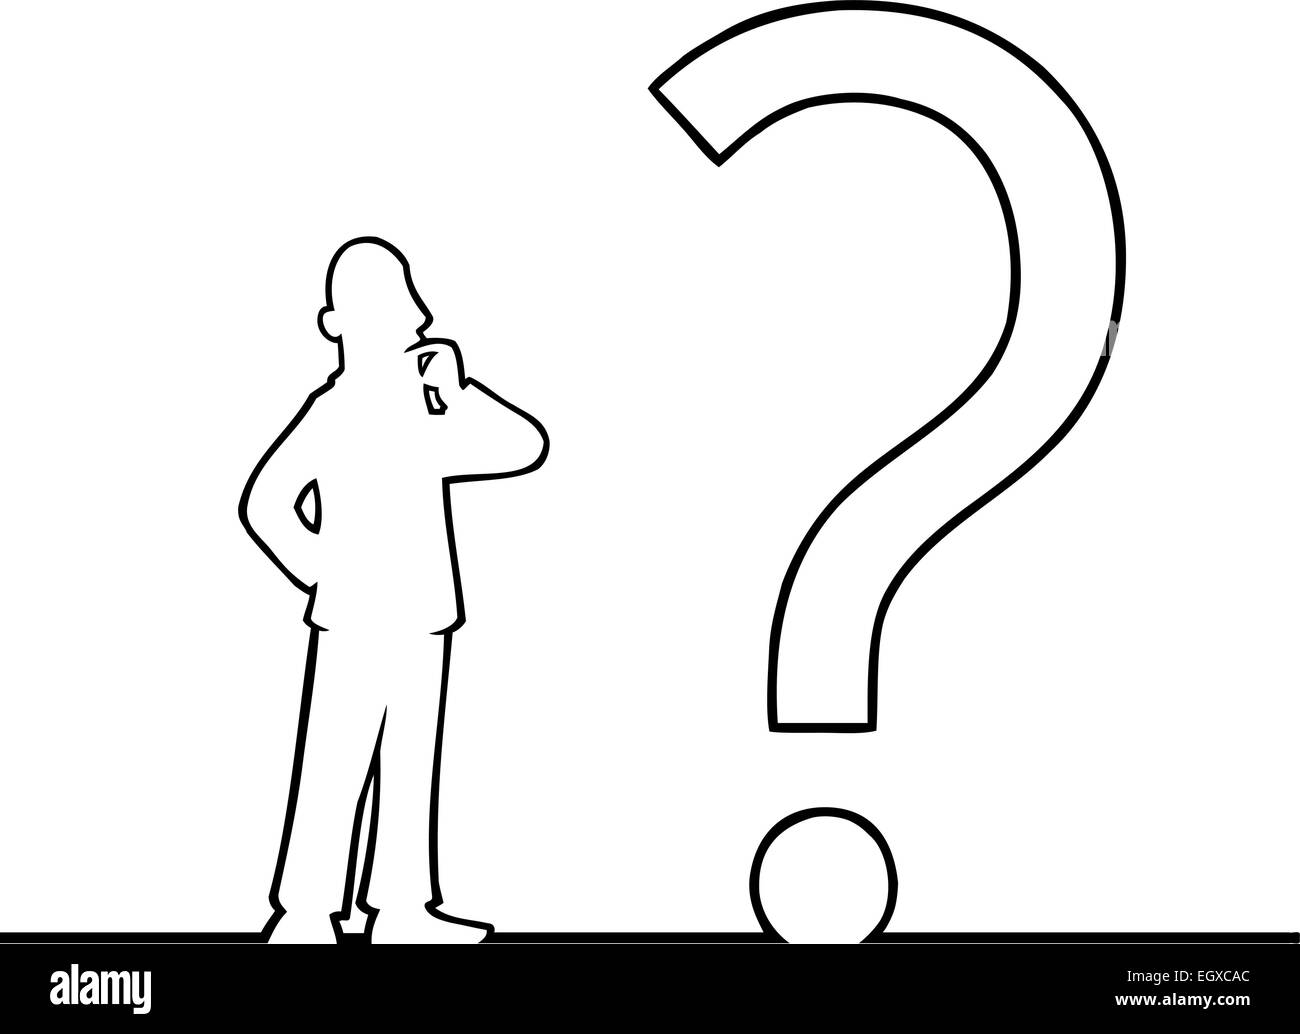 Black line art illustration of a man looking at a question mark. - Stock Image